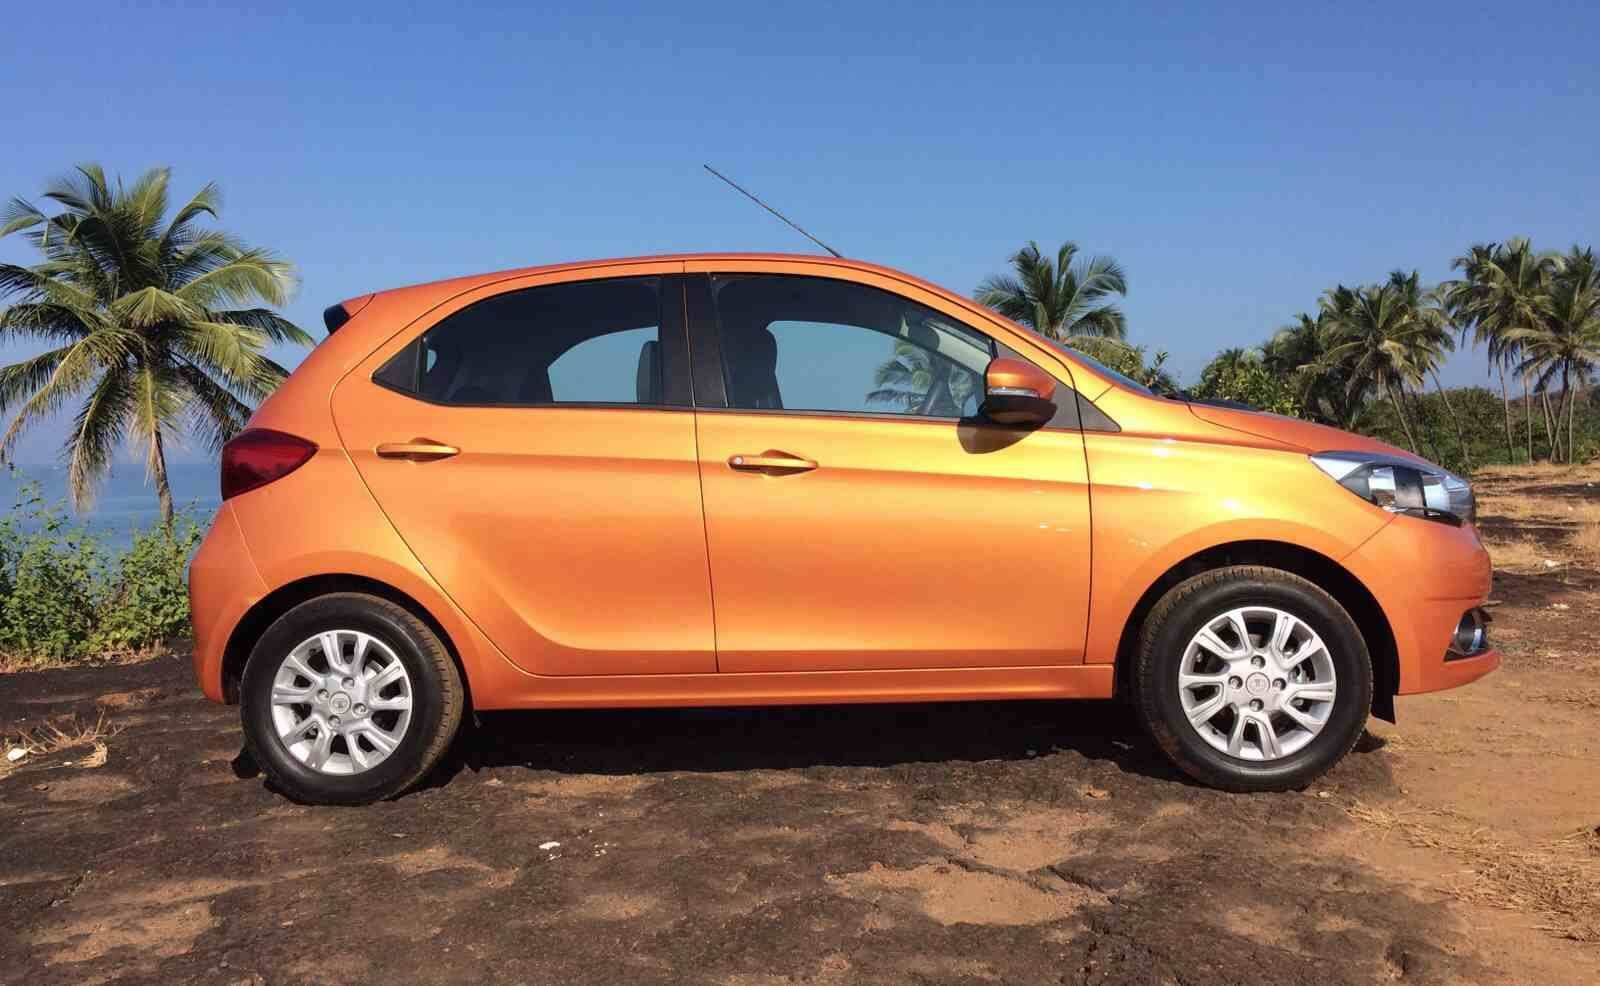 Tata Indica eV2 will not be replaced by Zica from Tata